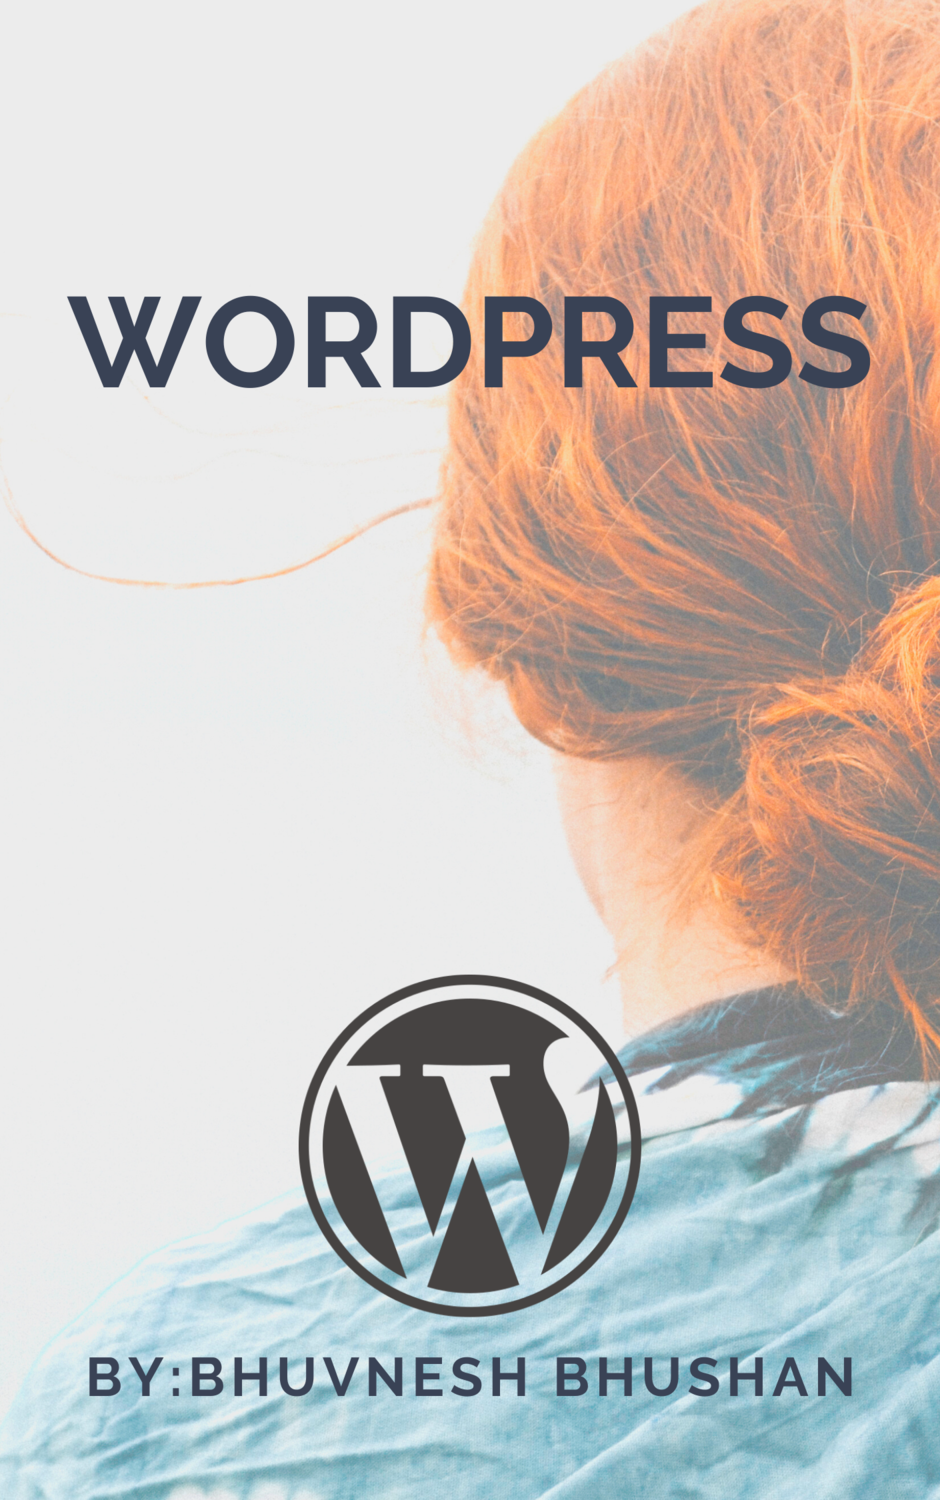 The Ultimate WordPress Guide: Start a Perfect Blog in 45 Minutes